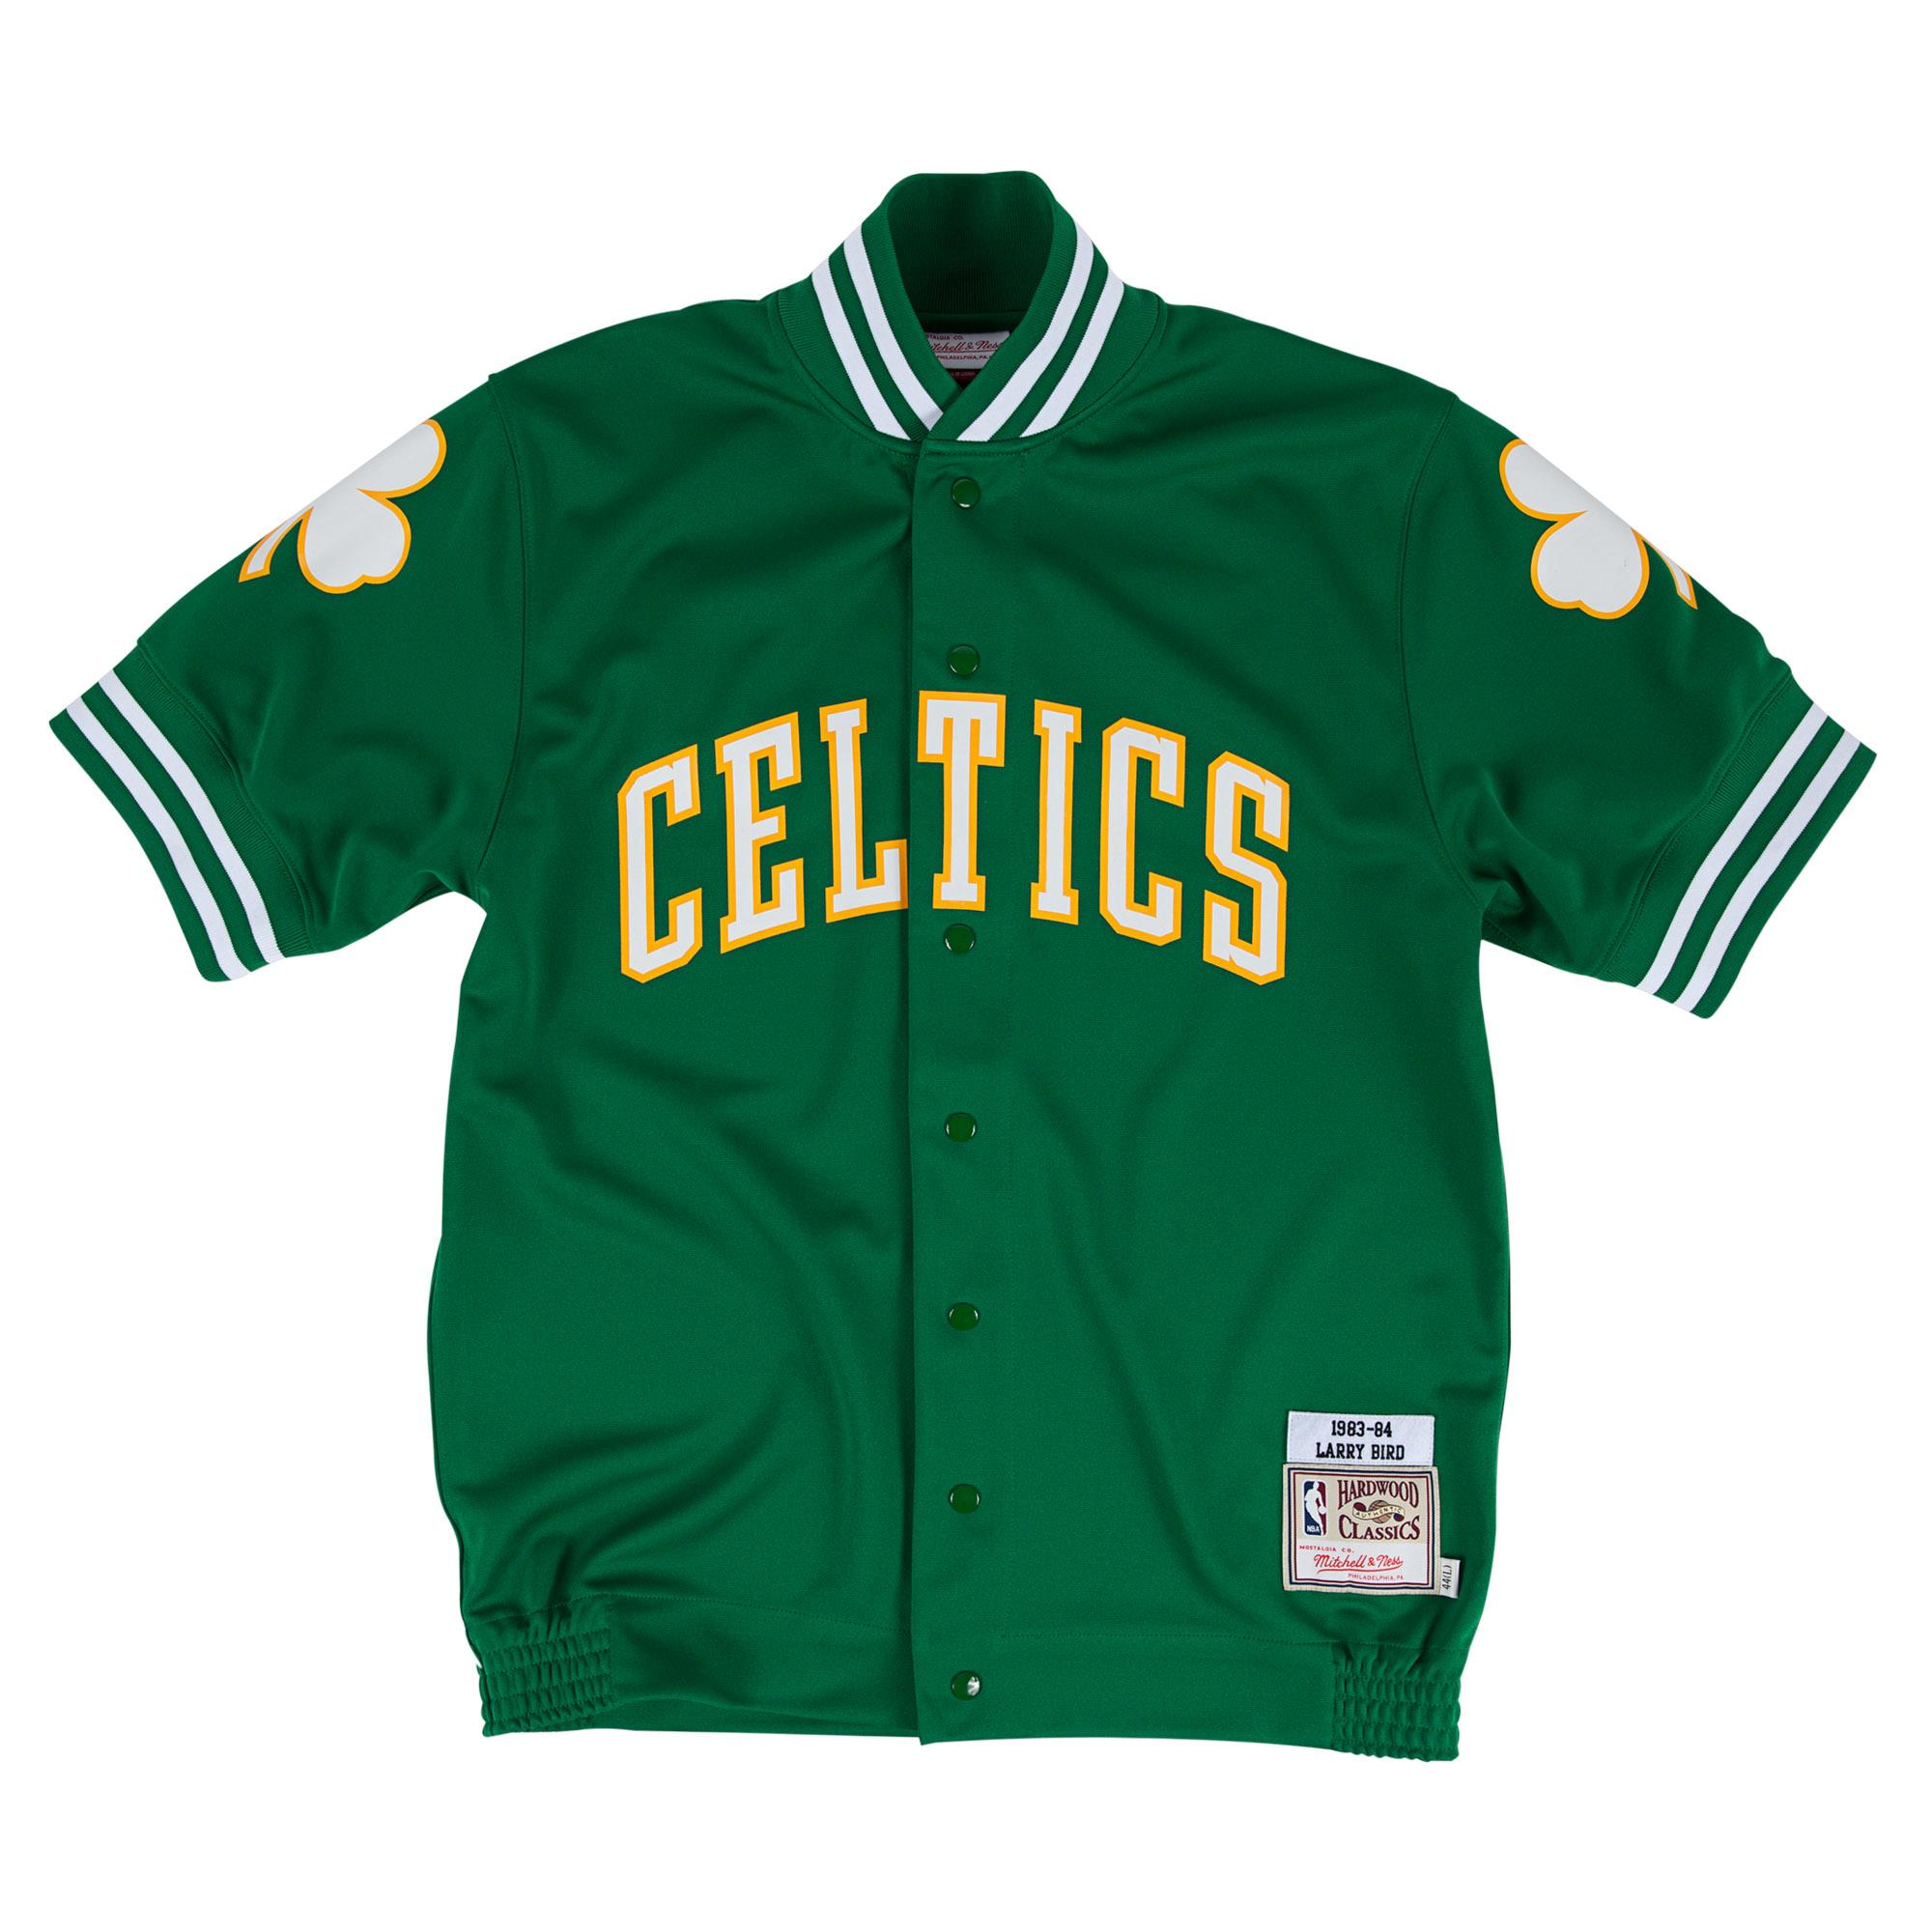 outlet store 50bc3 c9653 Mitchell & Ness | Larry Bird 1983-84 Boston Celtics ...